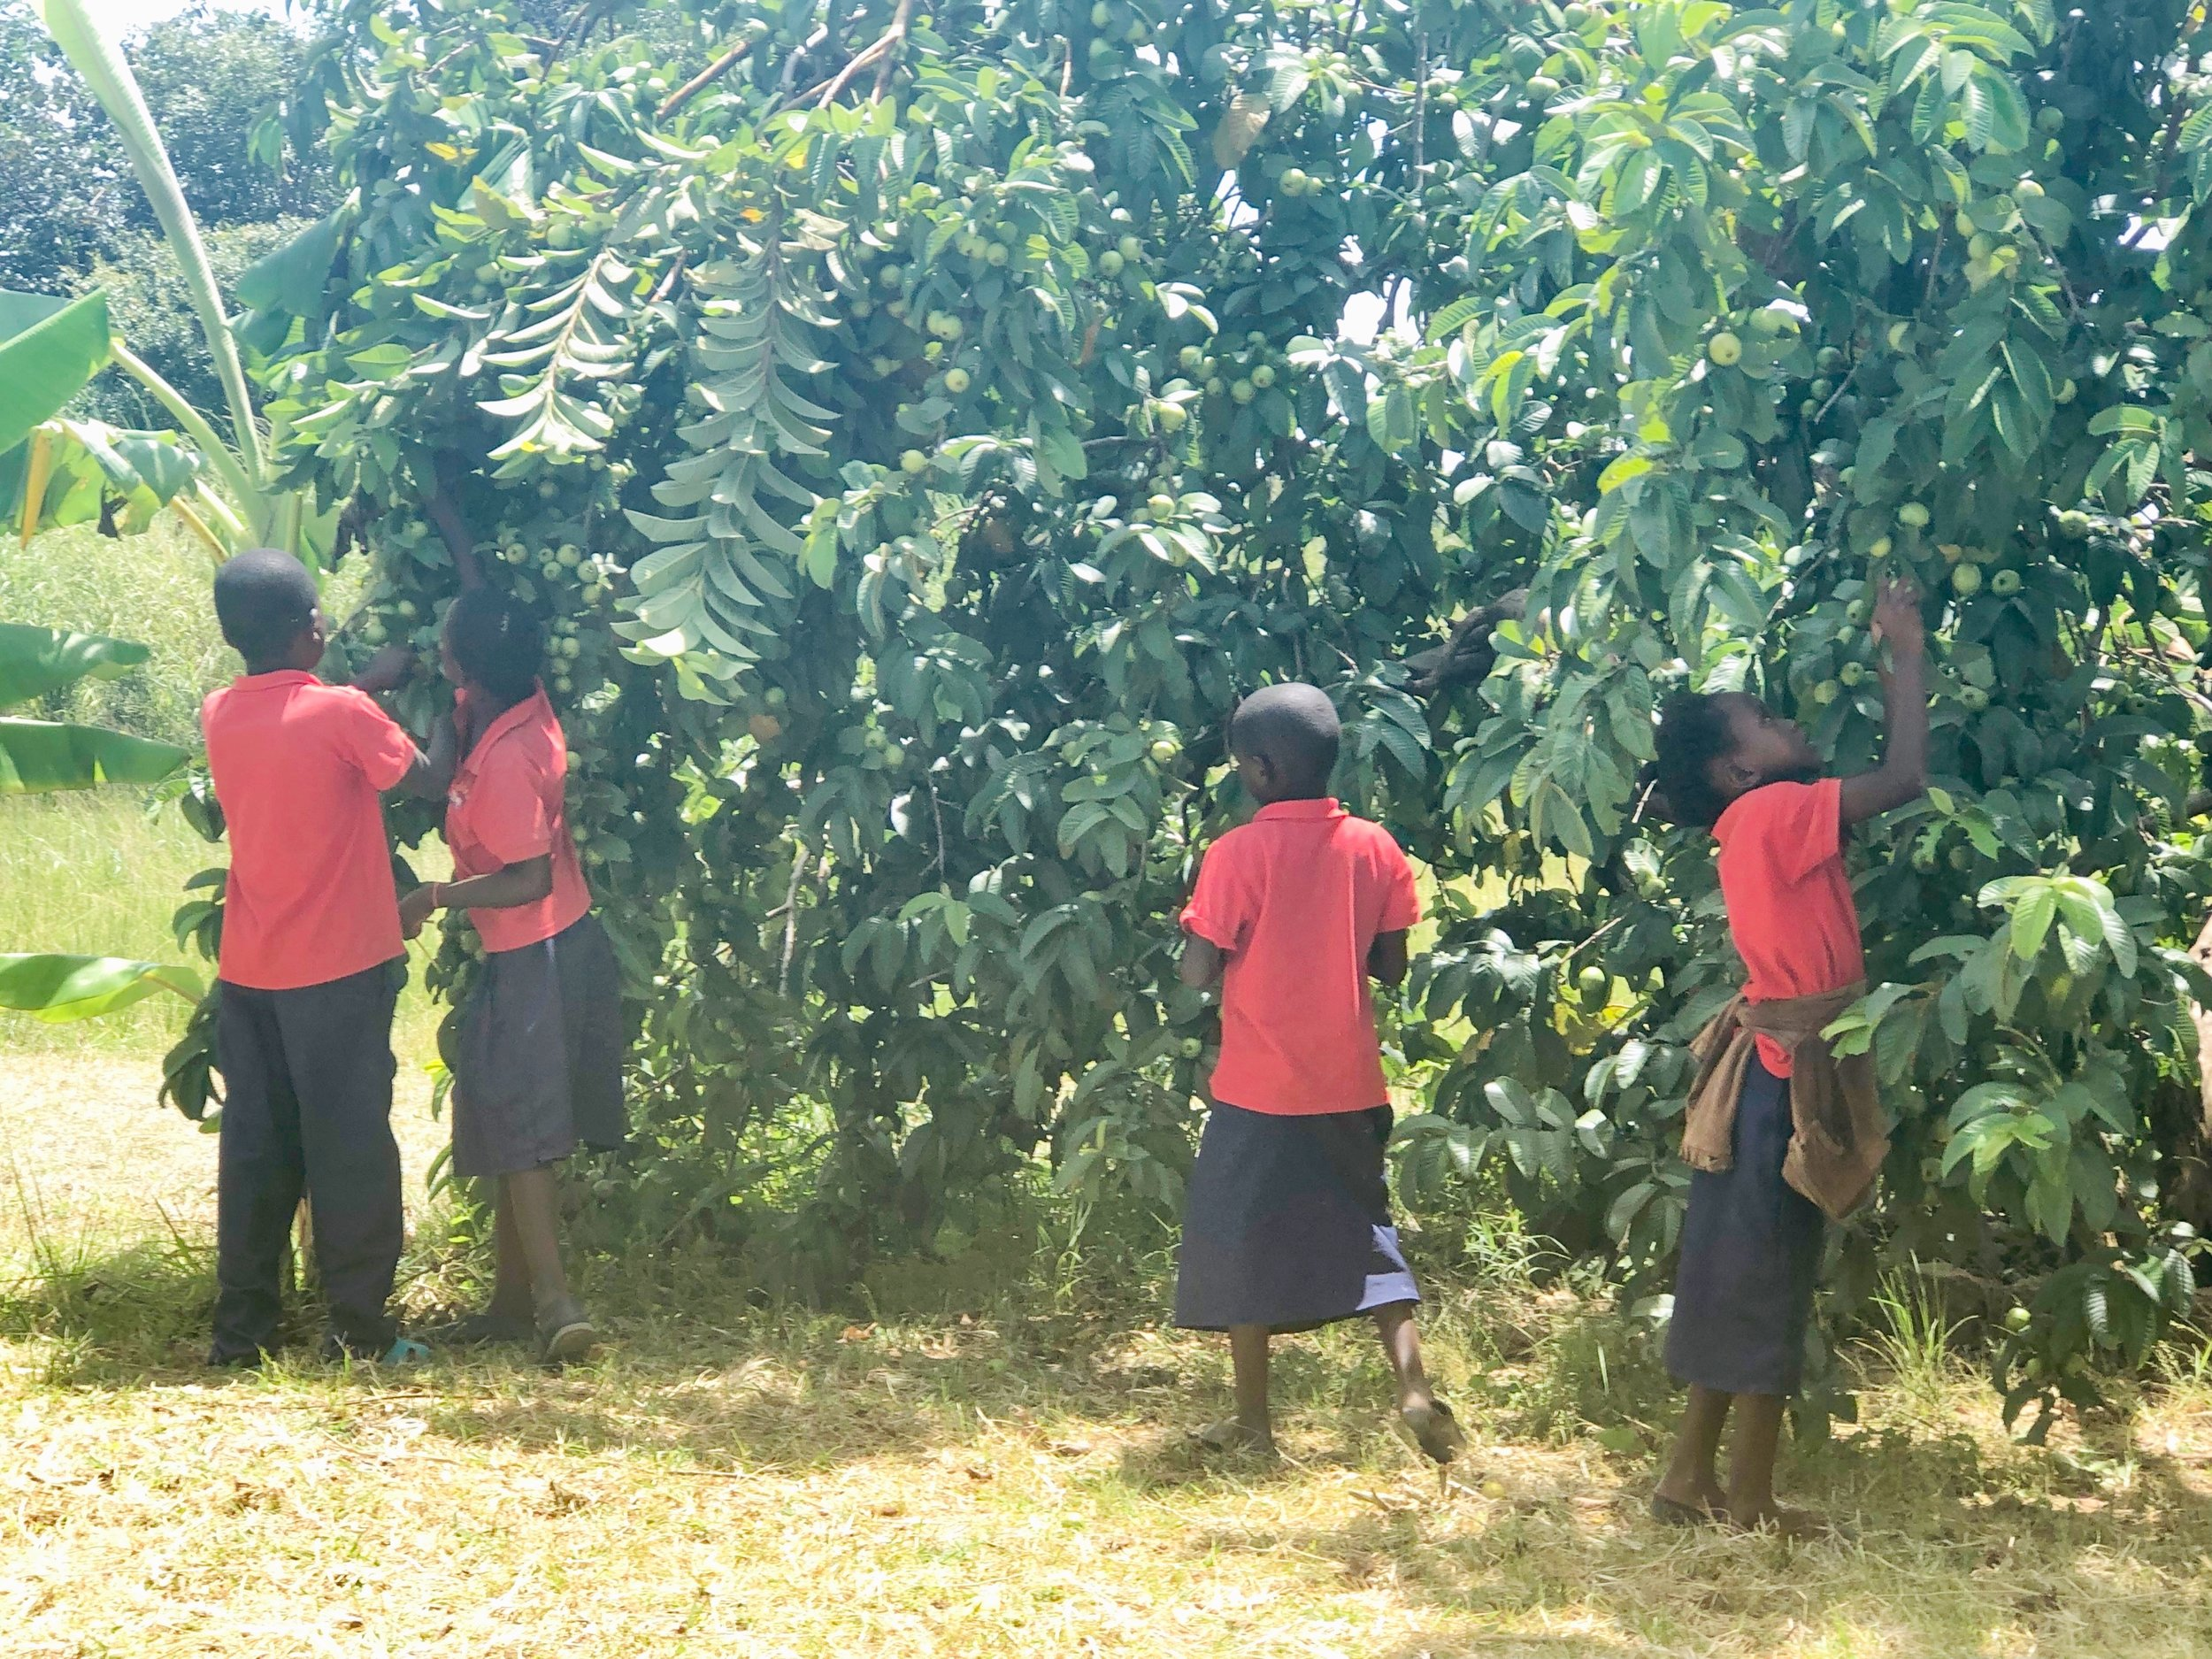 school kids picking guavas for lunch before heading off to school